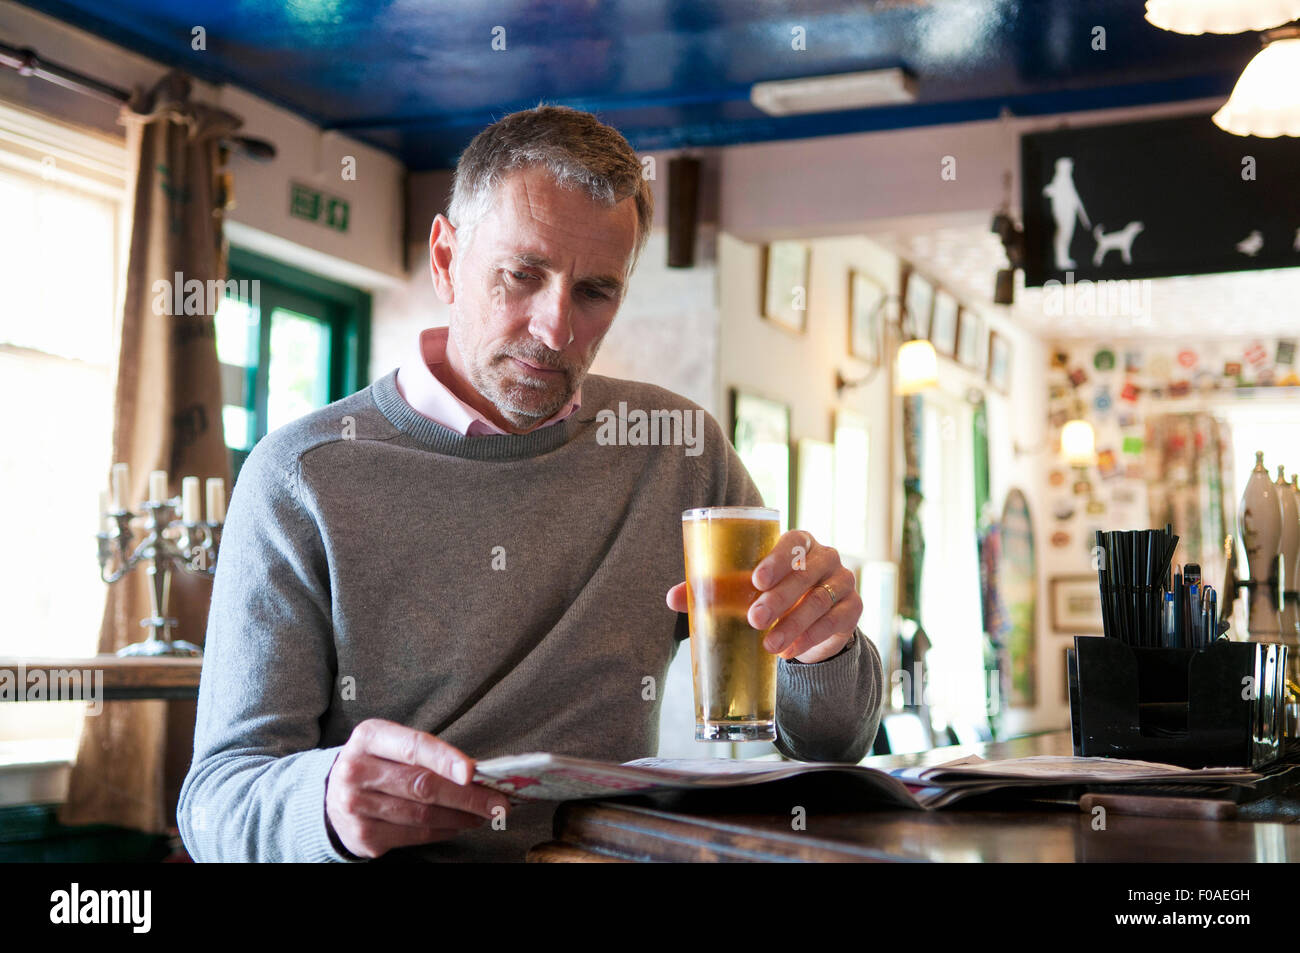 Mature man drinking beer and reading newspaper in pub - Stock Image